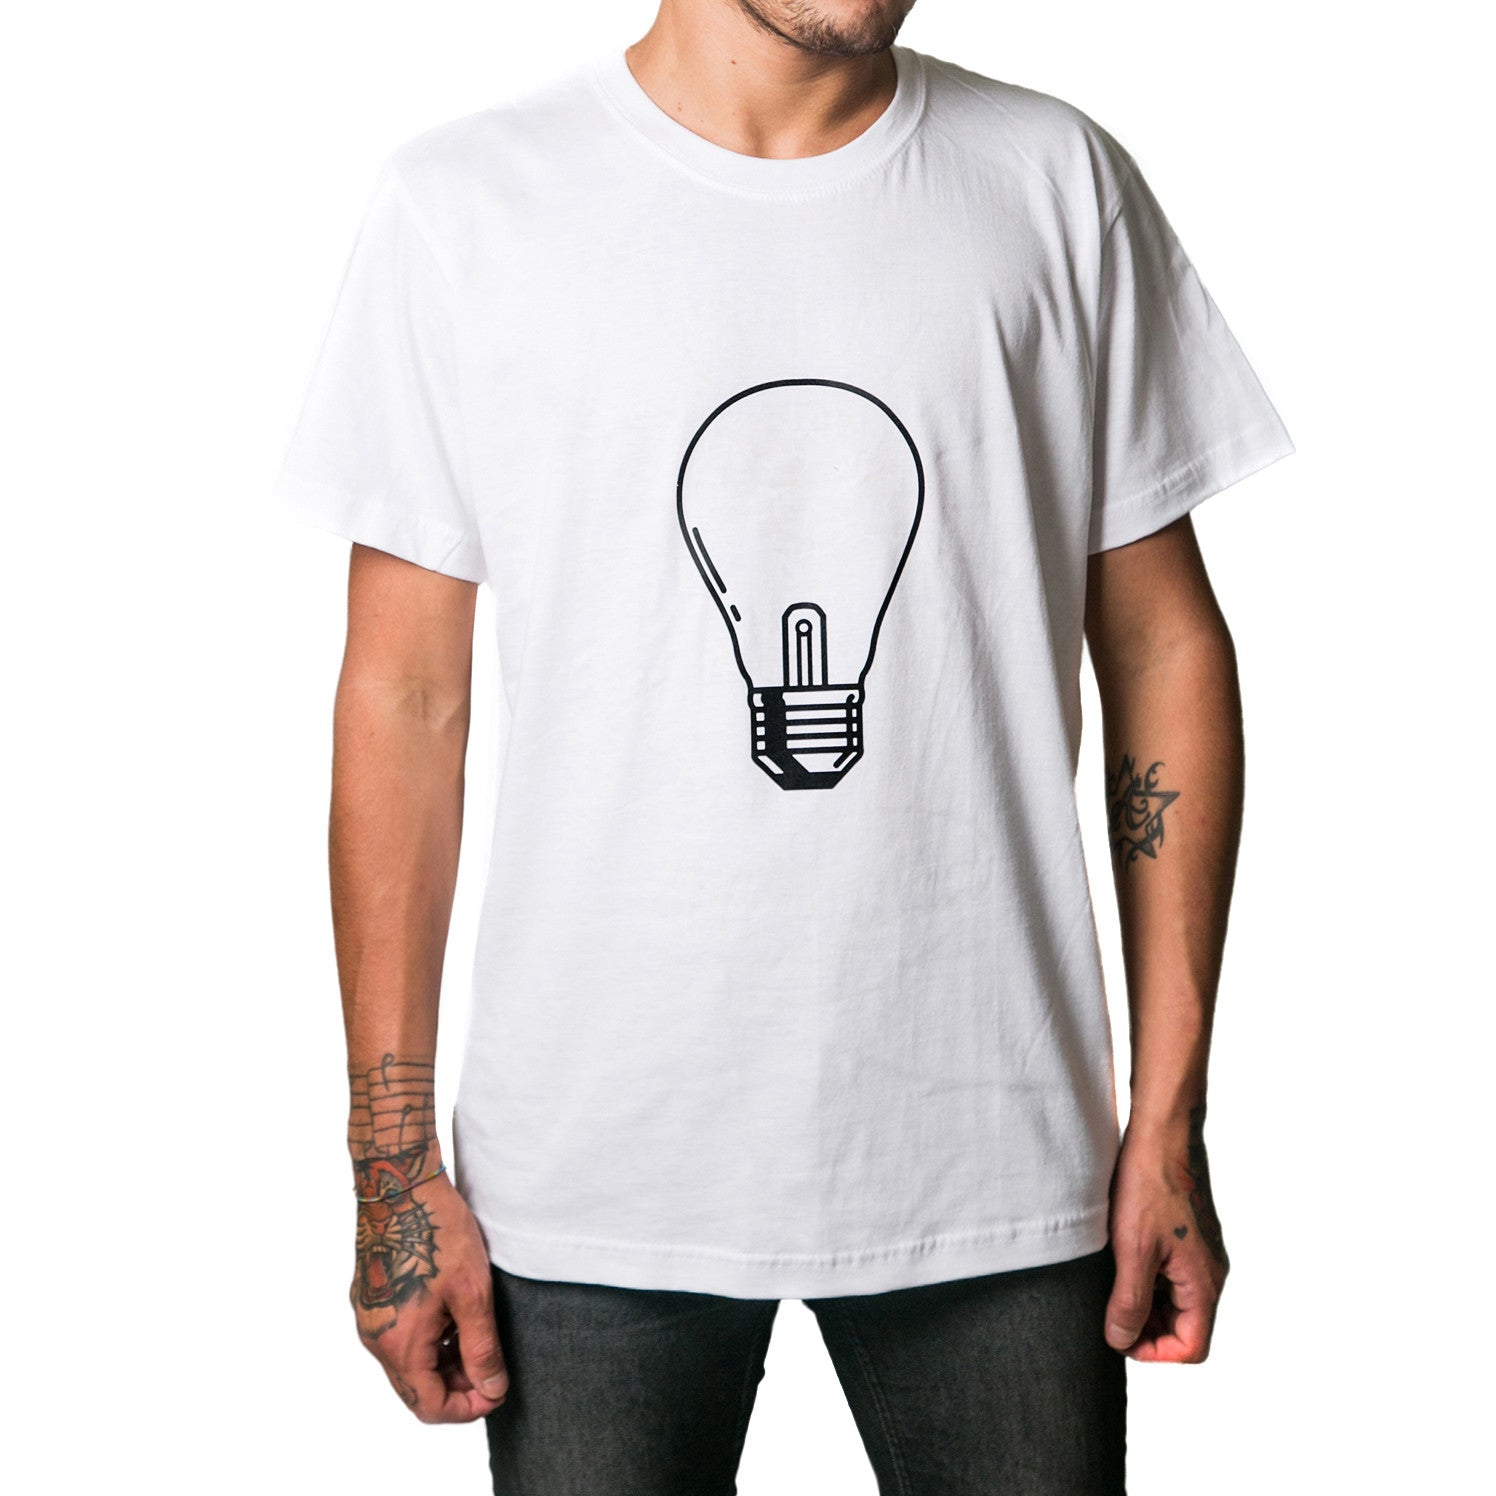 Illumina Luminescente - T-shirt Uomo - T-Shirt by Fol The Brand